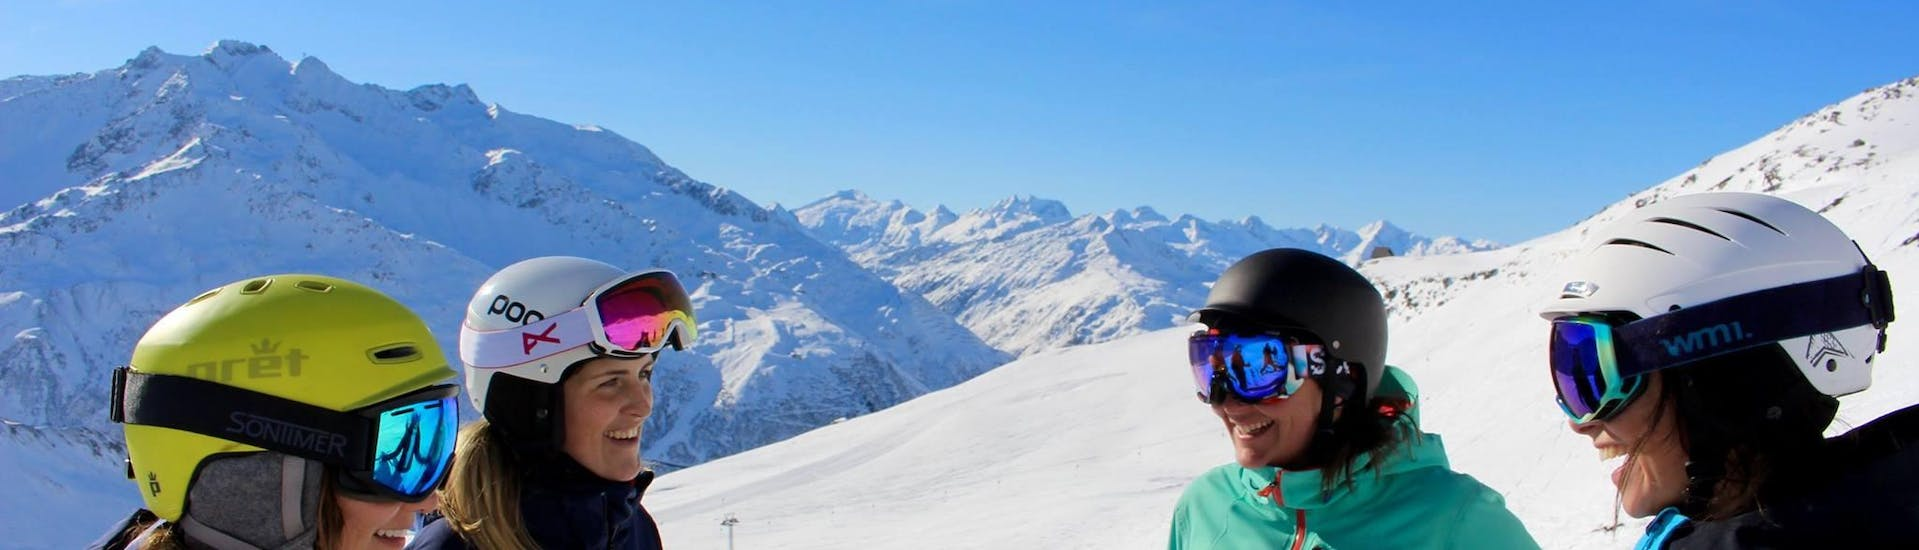 Having fun during Ski Instructor Private for Adults - All Levels